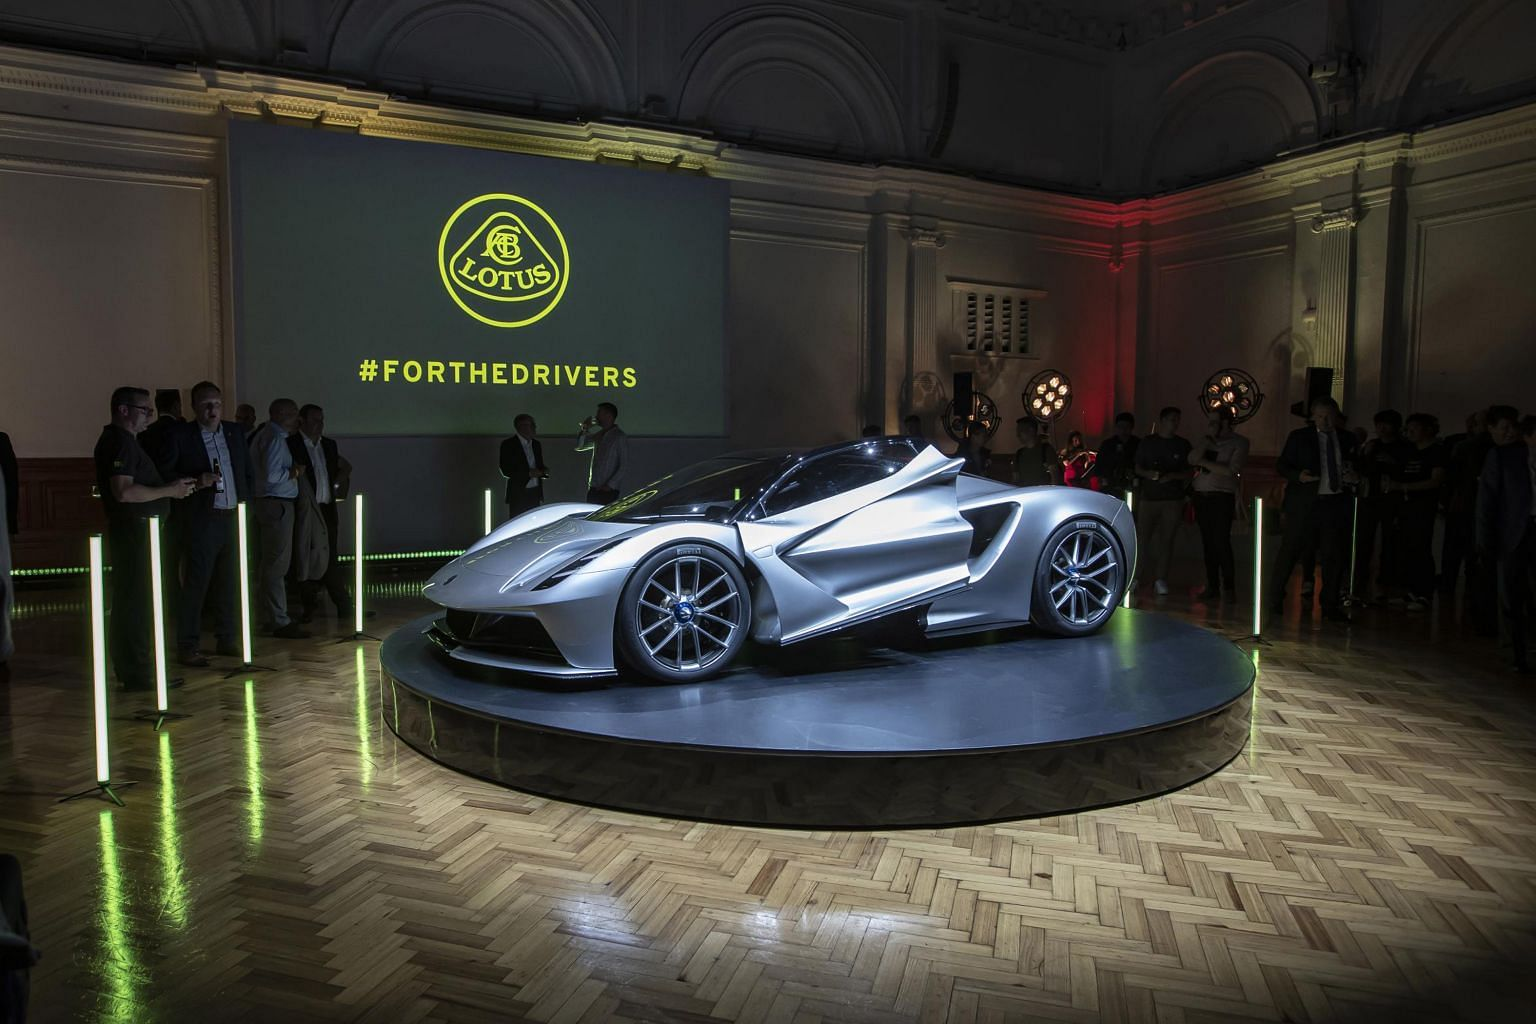 Lotus is focused on producing cars such as the Evija, which has a mid-mounted 2,000kW lithium-ion battery, giving it the sharp handling of a mid-engined sports car.